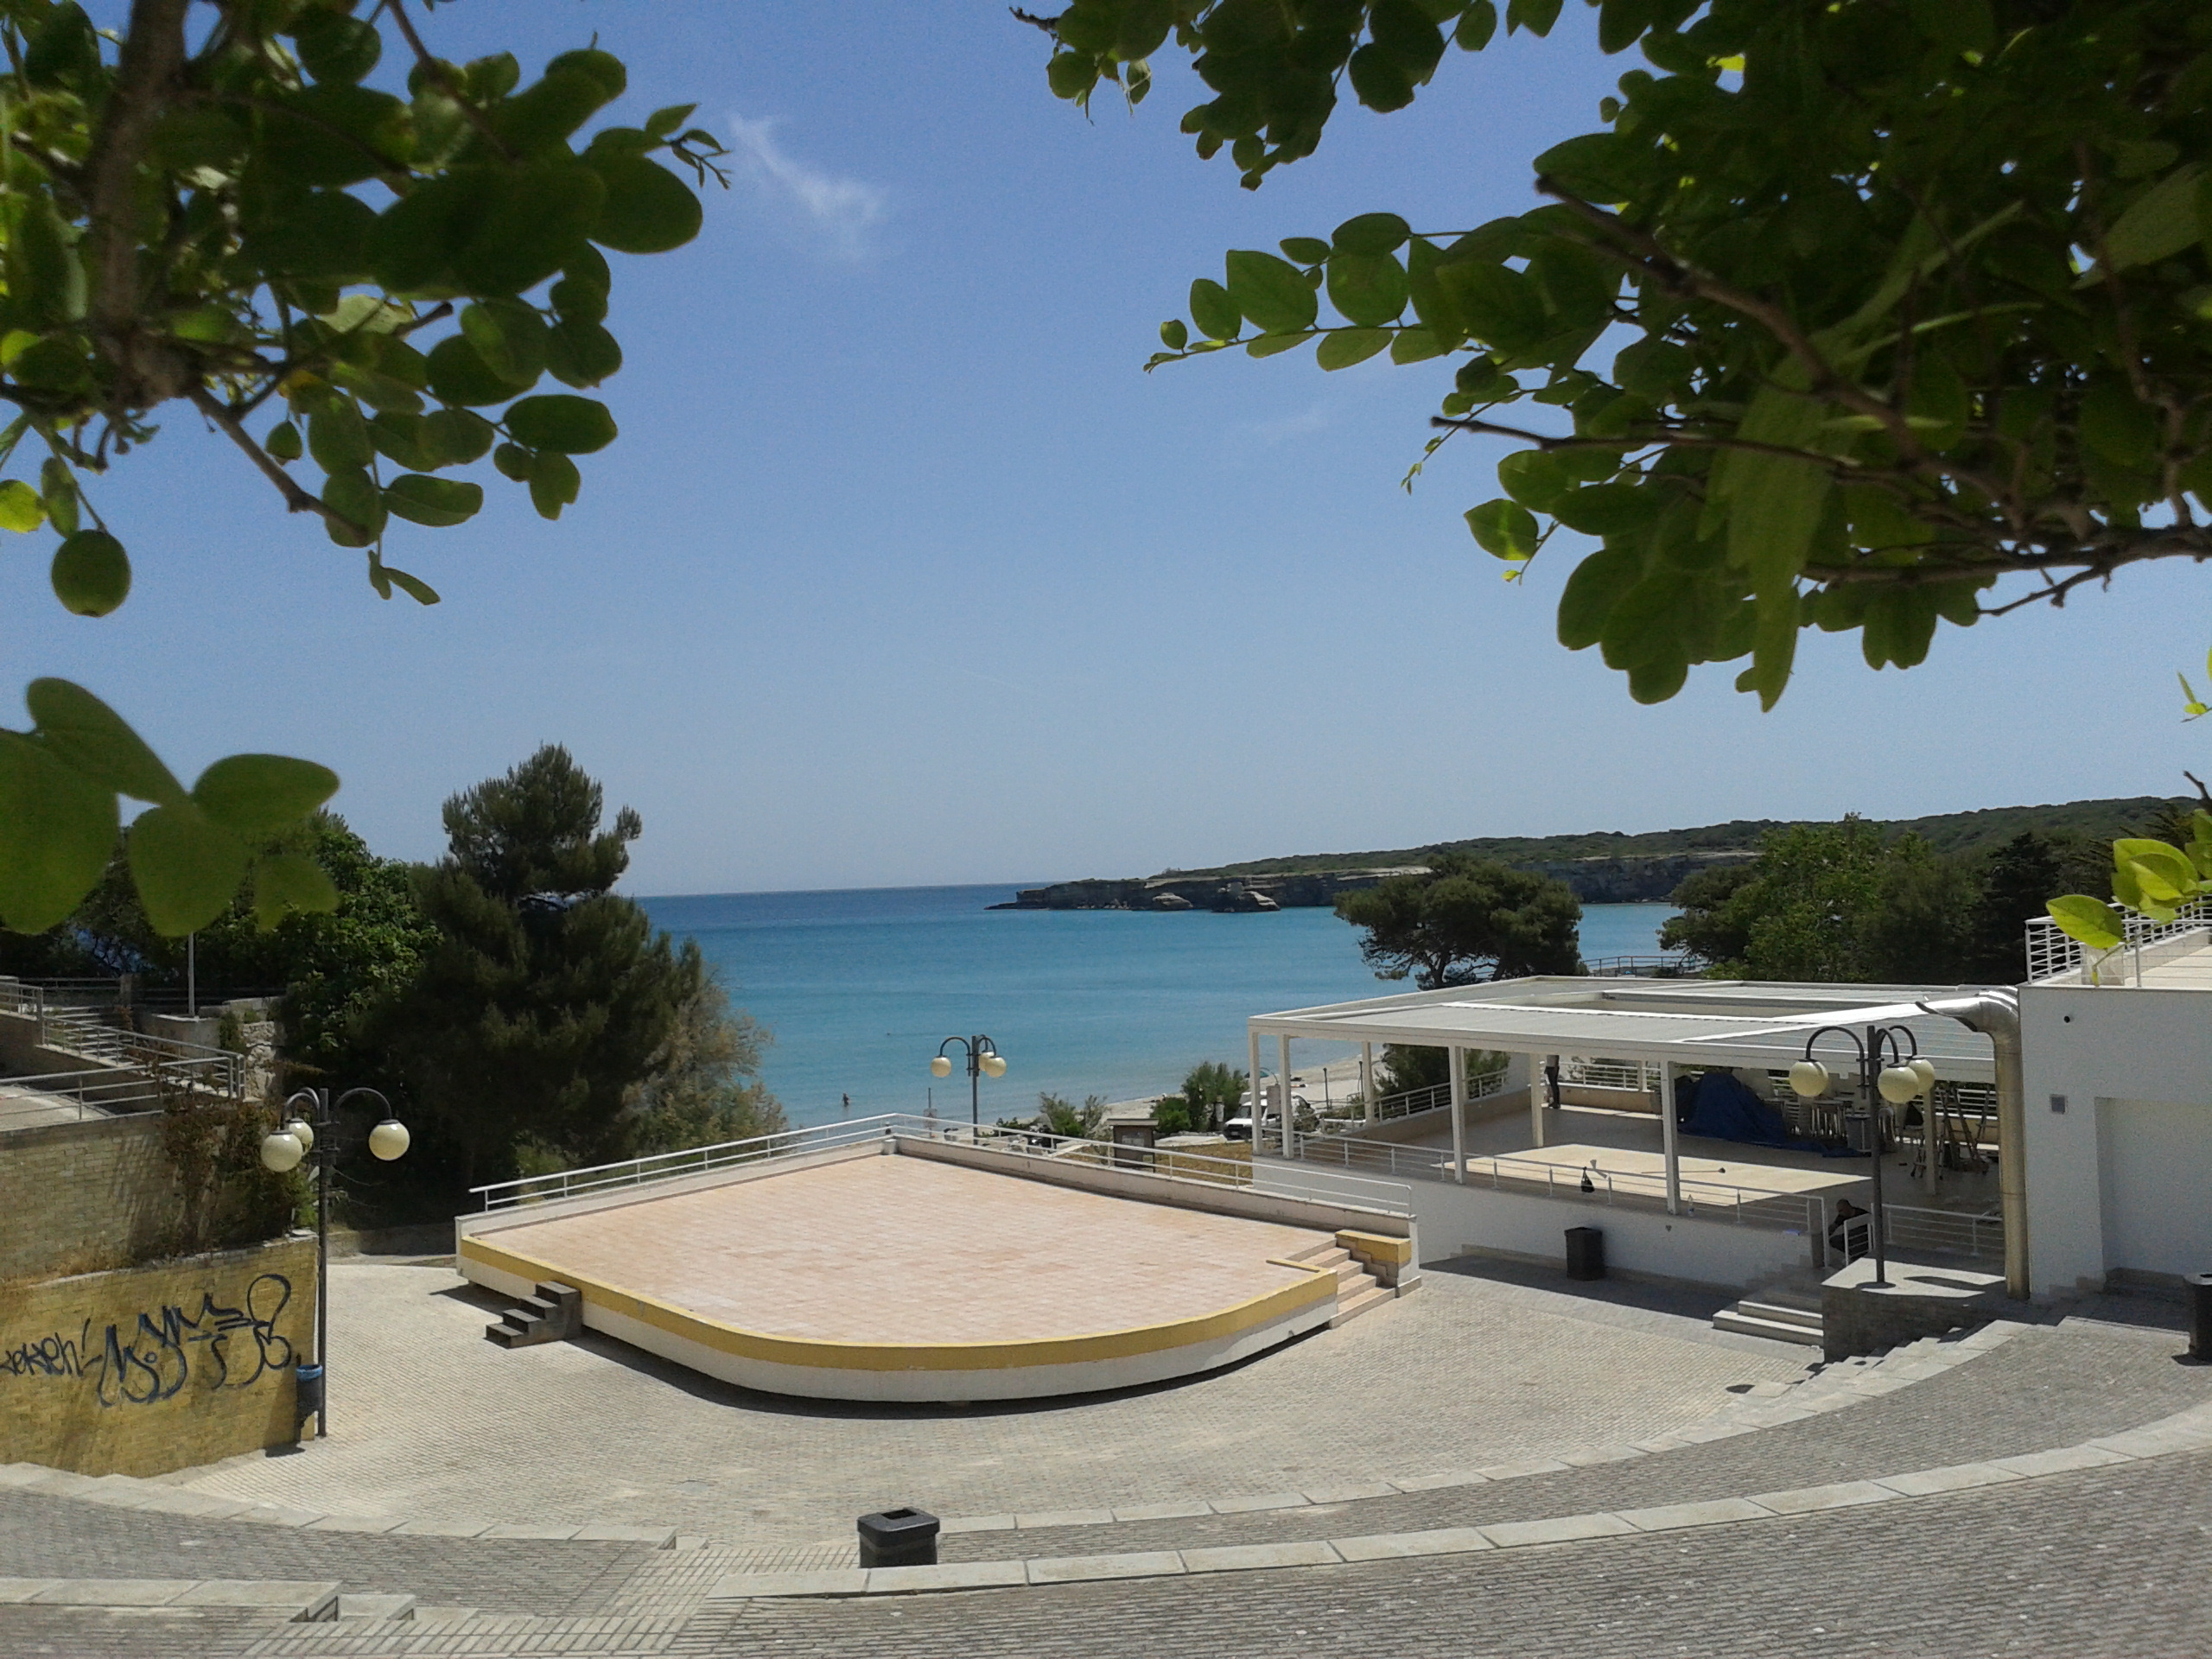 Torre dell'Orso arriva l'estate 2015